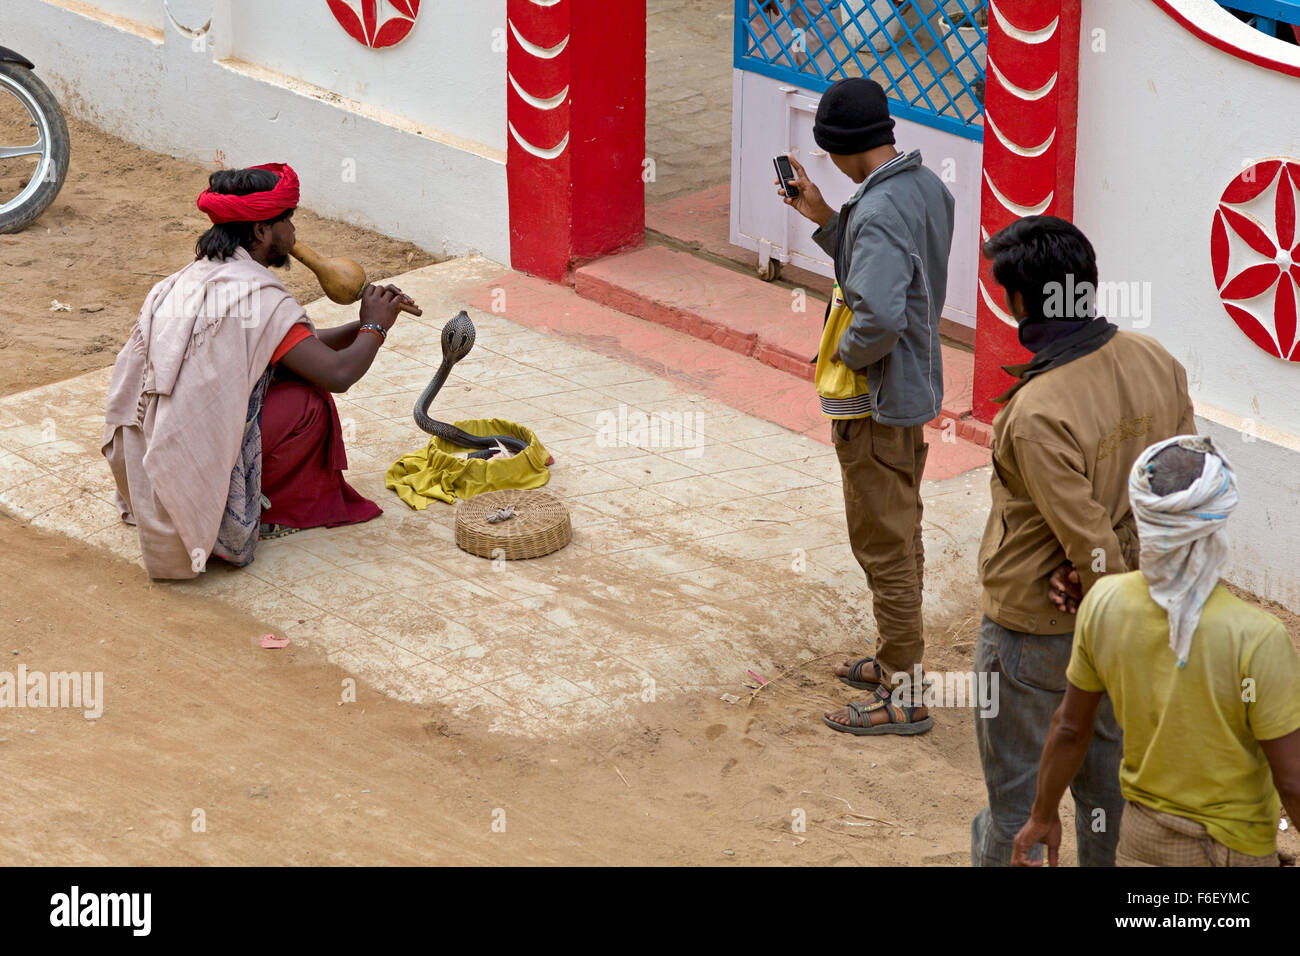 snake charmer going from door to door to collect money with his cobra - Stock Image